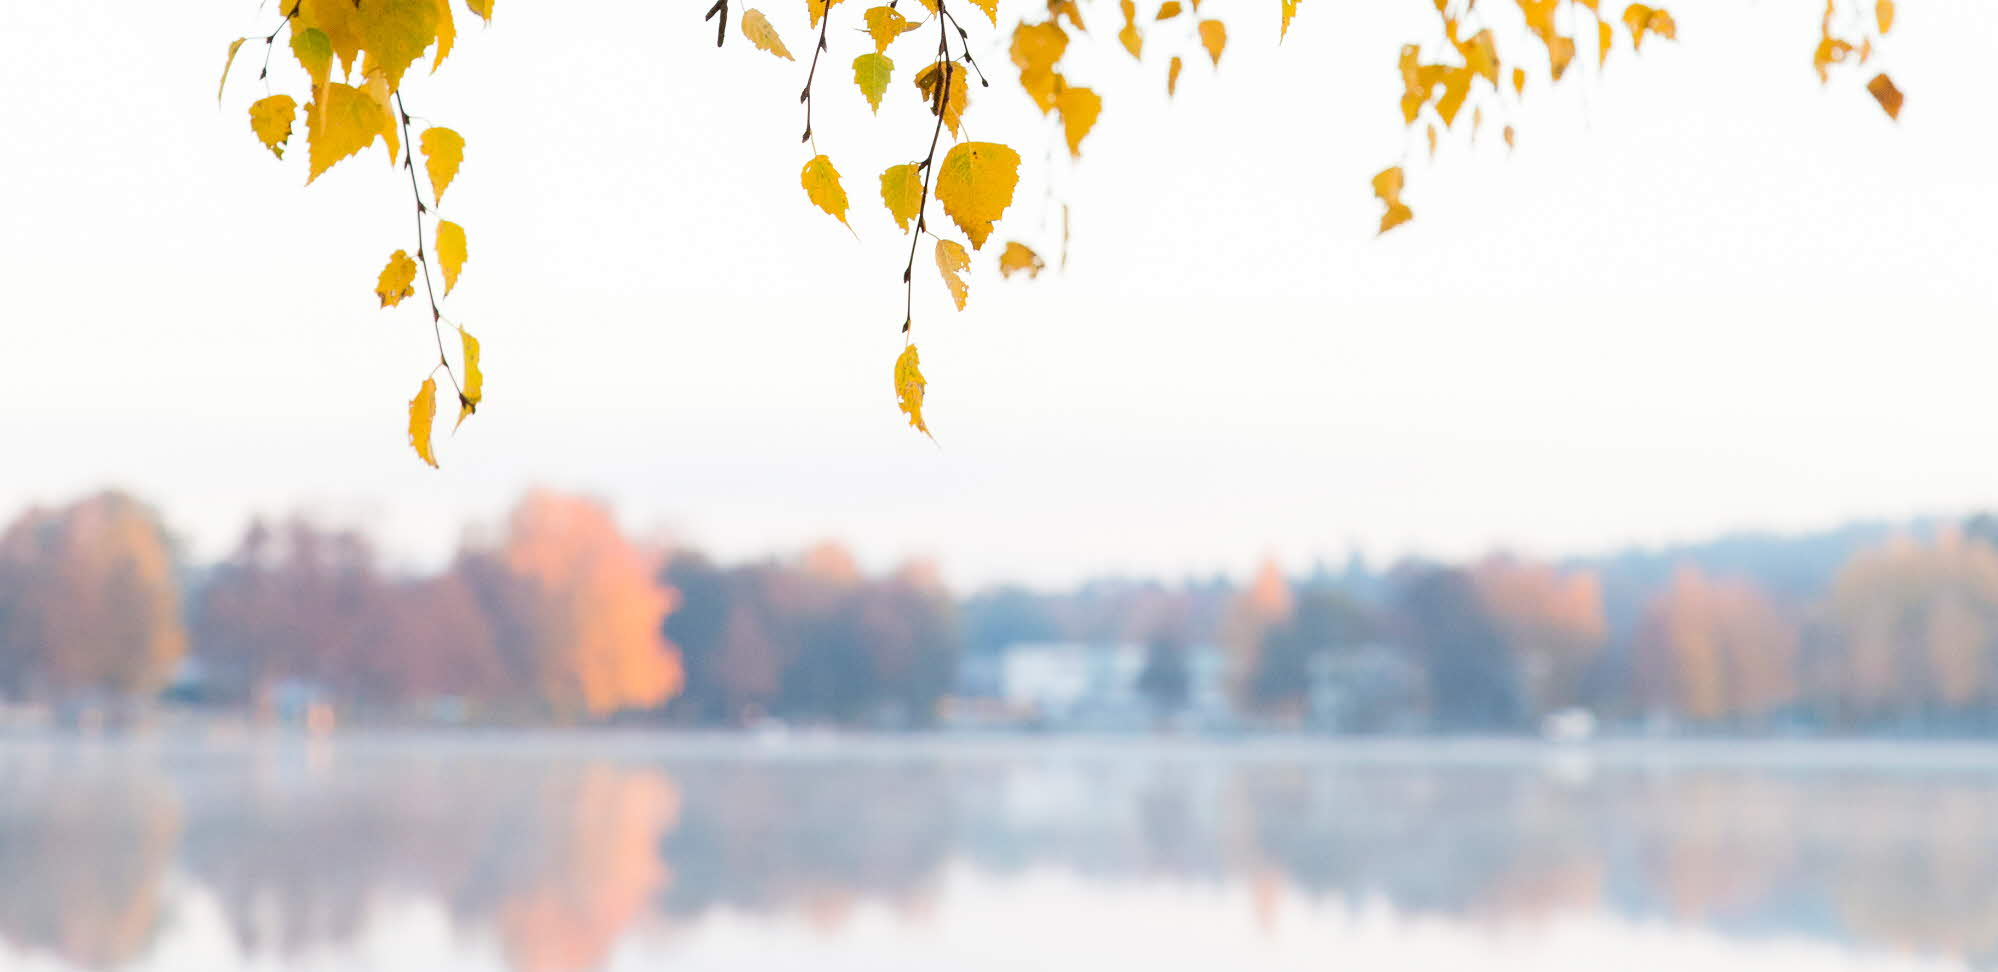 Autumn leaves with a lake in the background